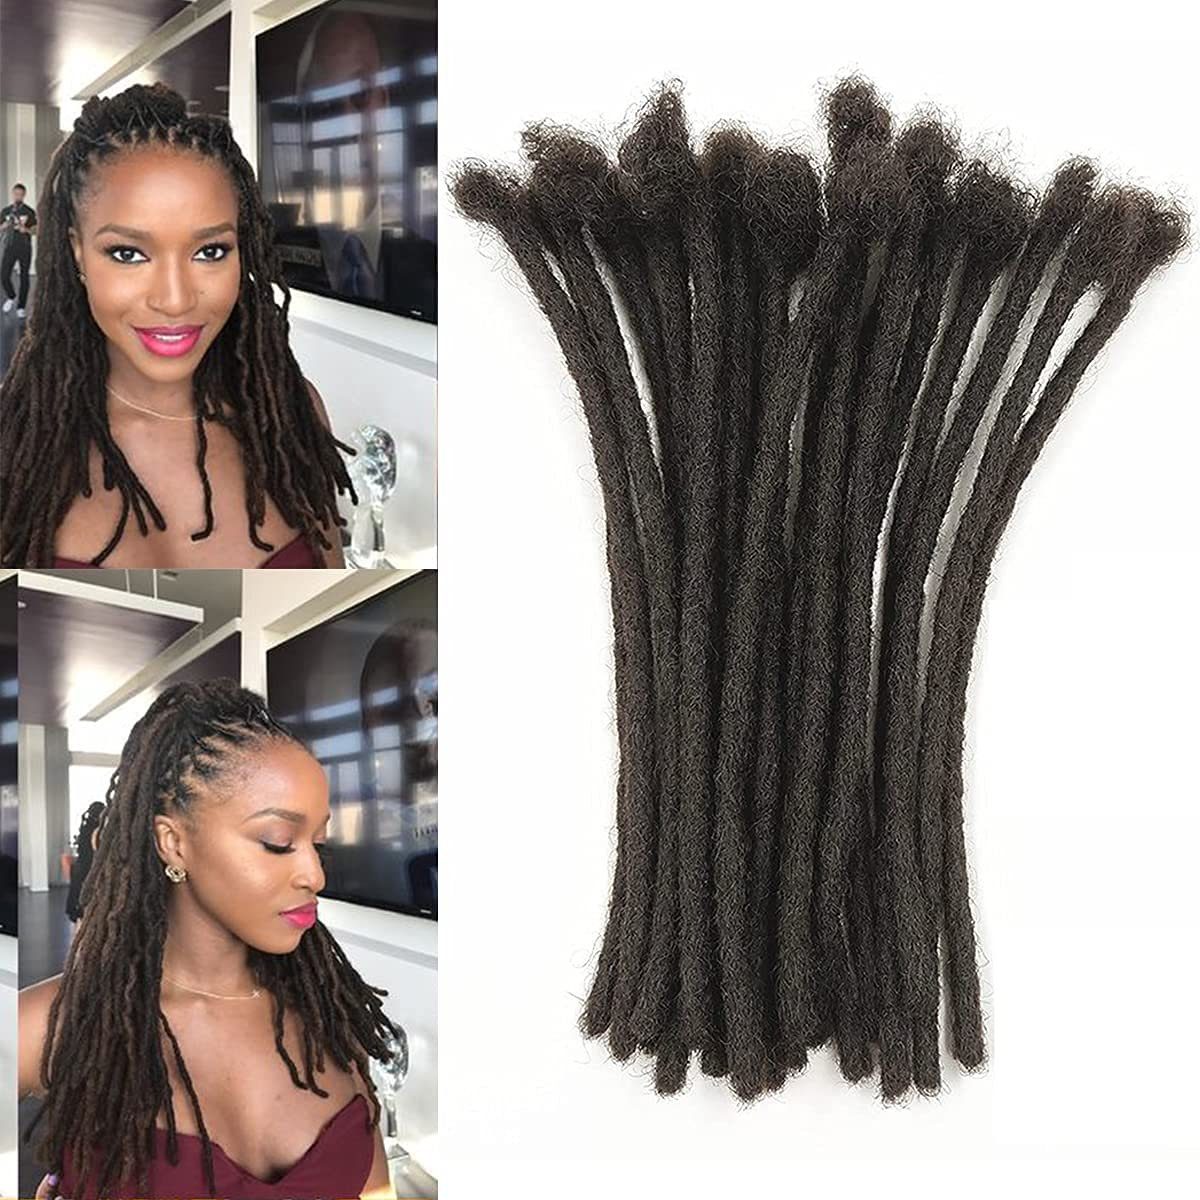 Max 87% OFF 100% Real Human Hair Dreadlock Extensions 60 Inches Don't miss the campaign 0.6c Locs 4